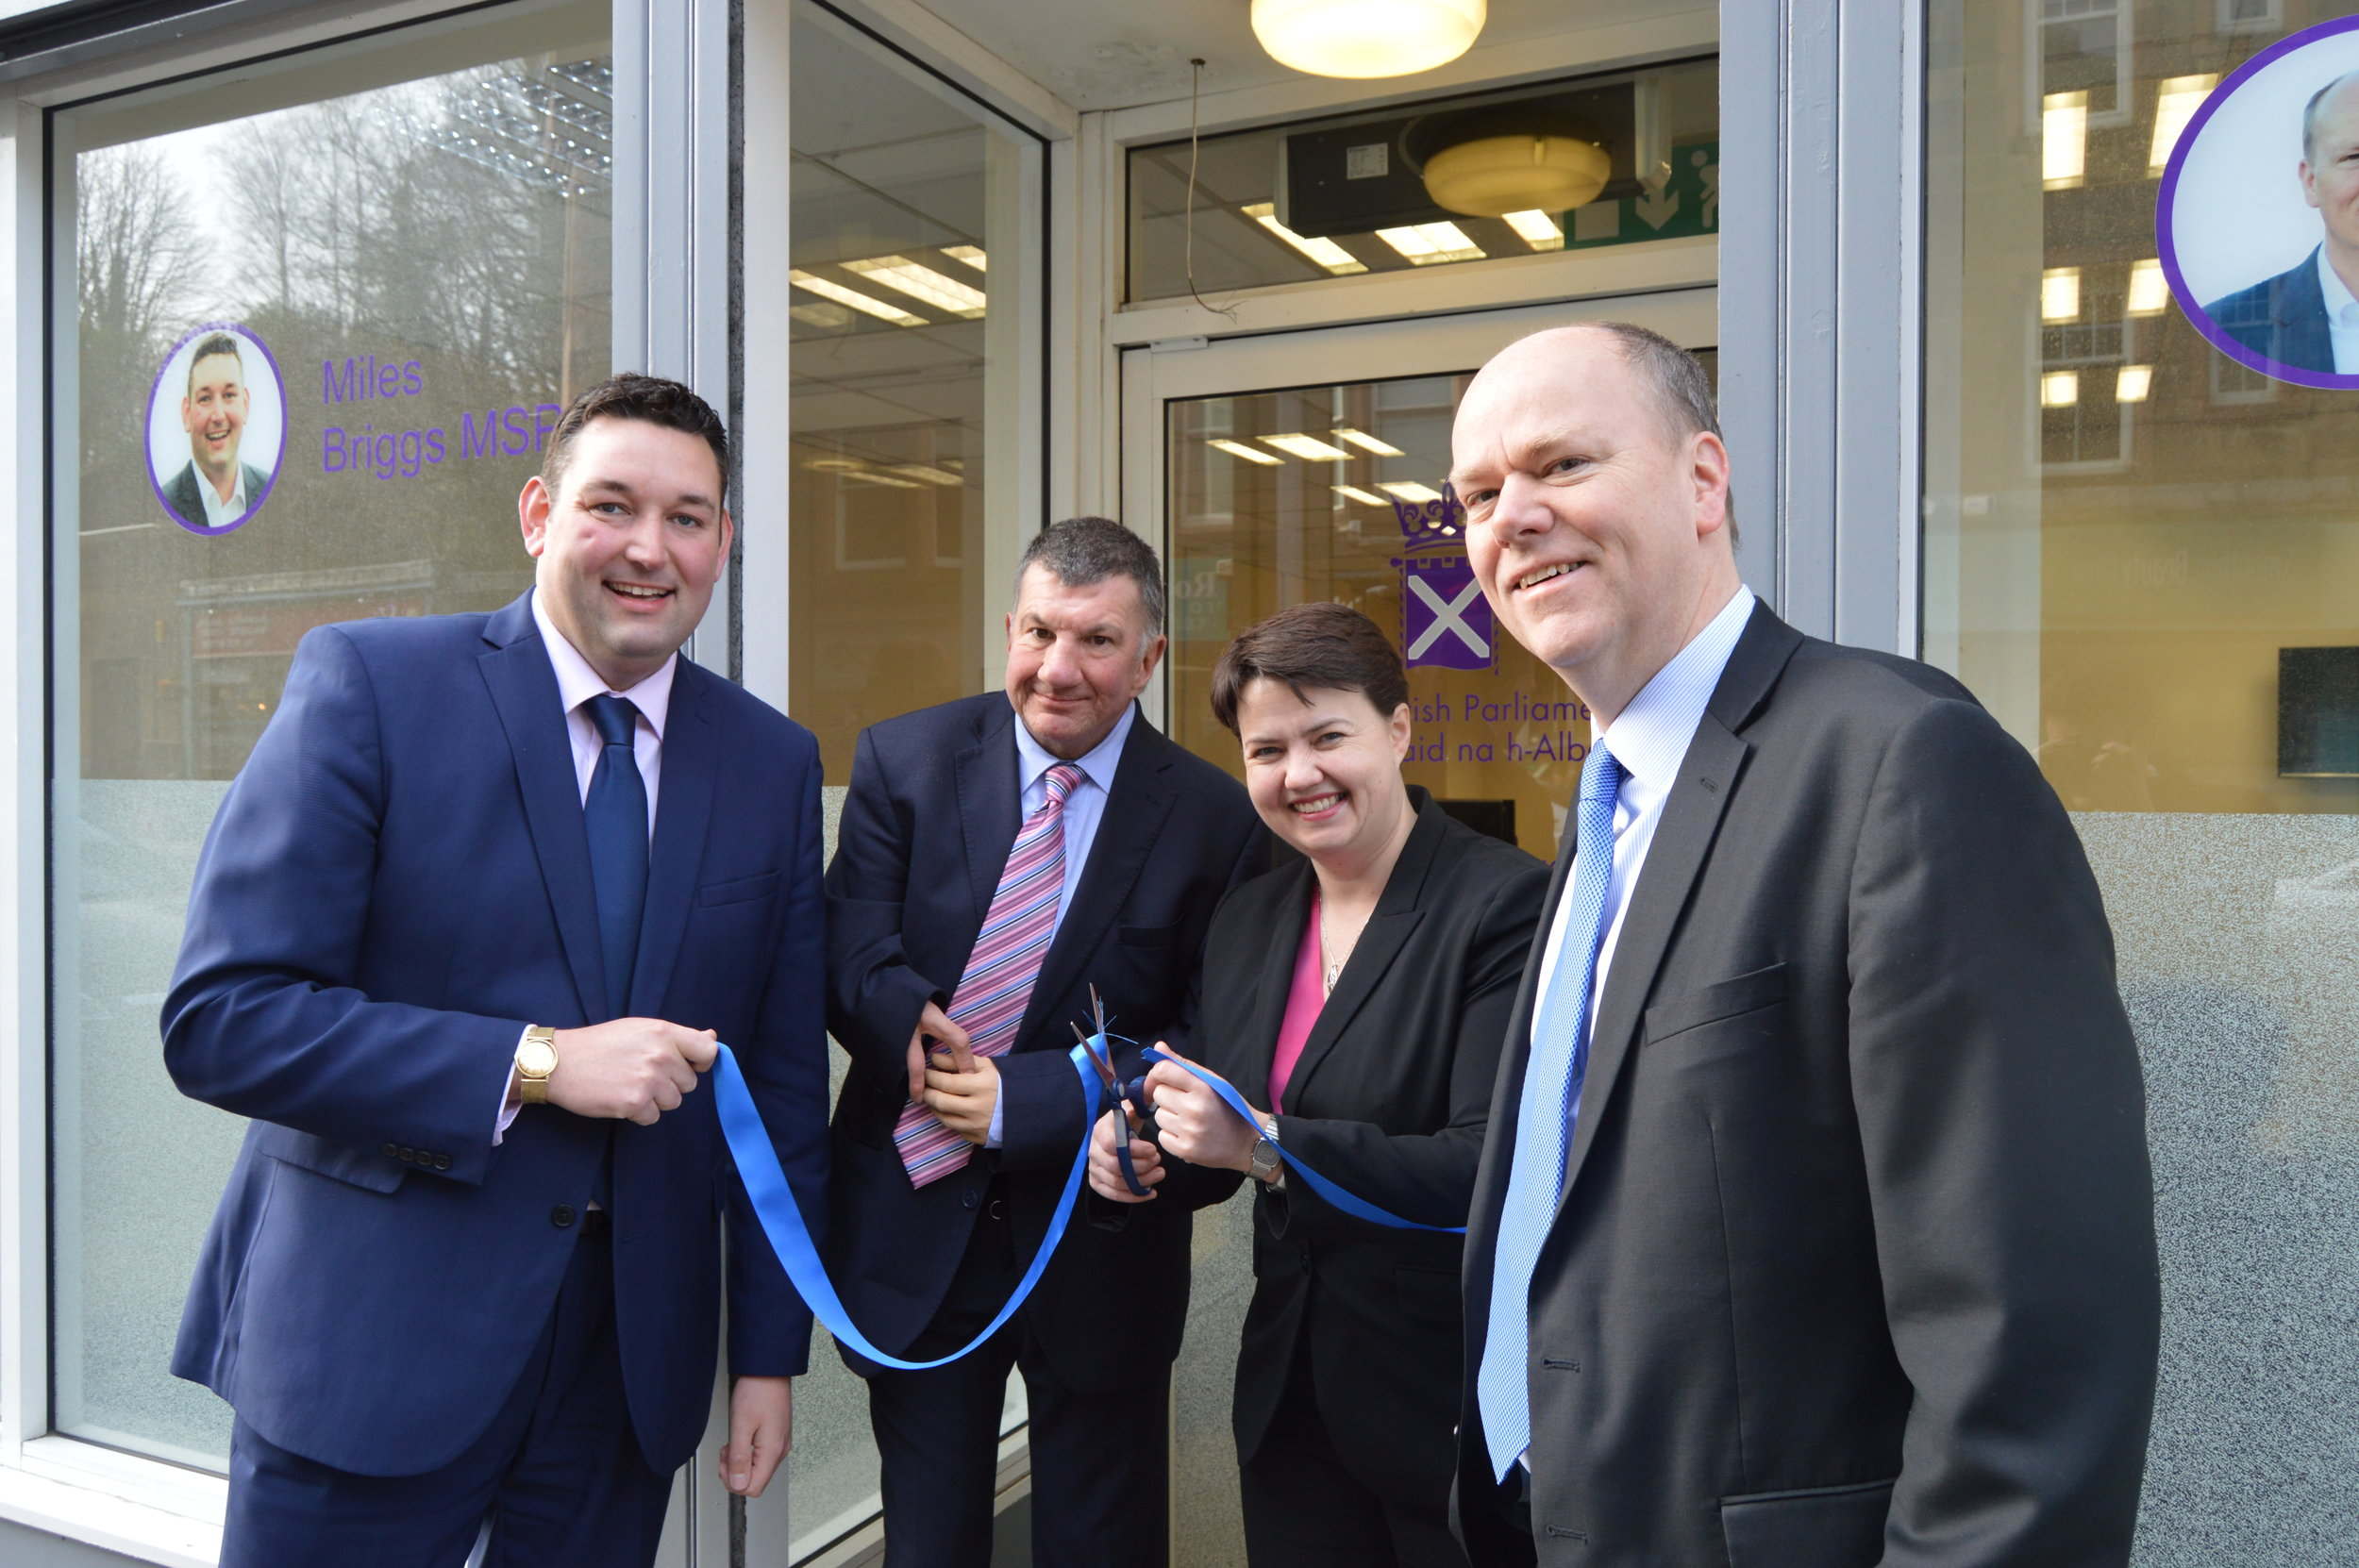 Miles, Ruth Davidson, Gordon Lindhurst and Jeremy Balfour at the opening of their new Parliamentary Office in Roseburn.